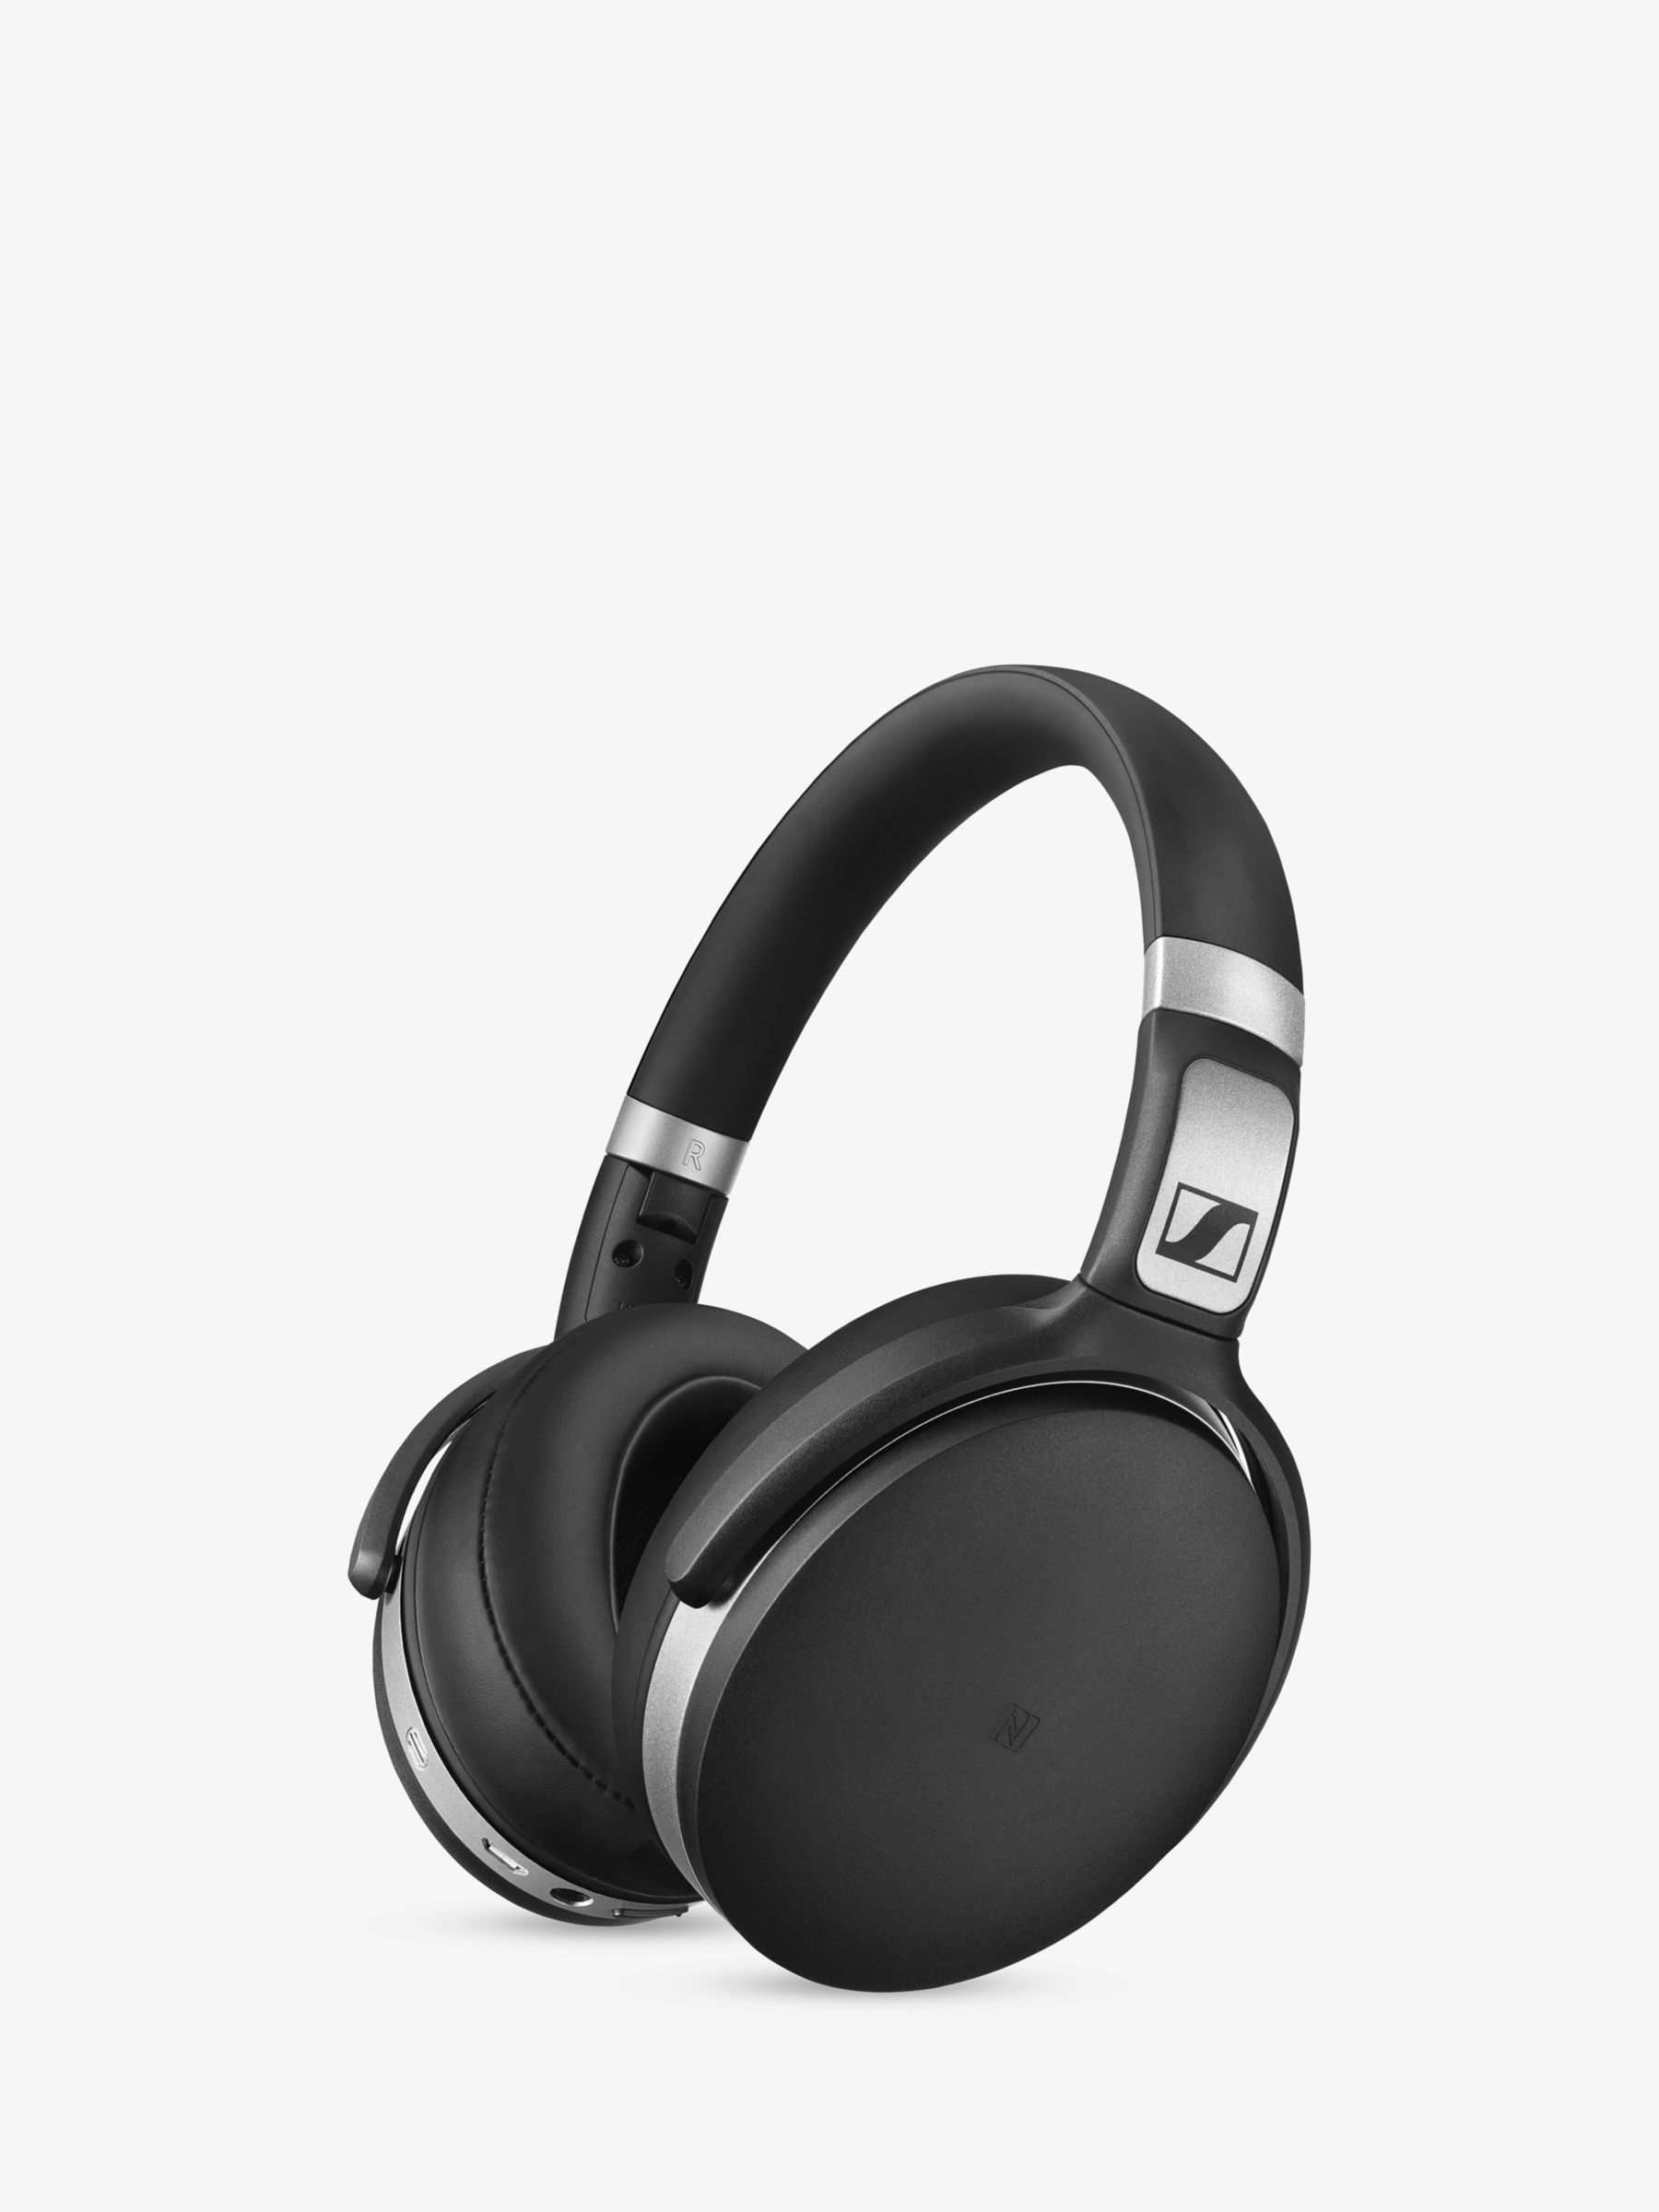 Sennheiser Sennheiser HD 4.50BTNC Noise Cancelling Bluetooth/NFC Wireless Over-Ear Headphones with Inline Microphone & Remote